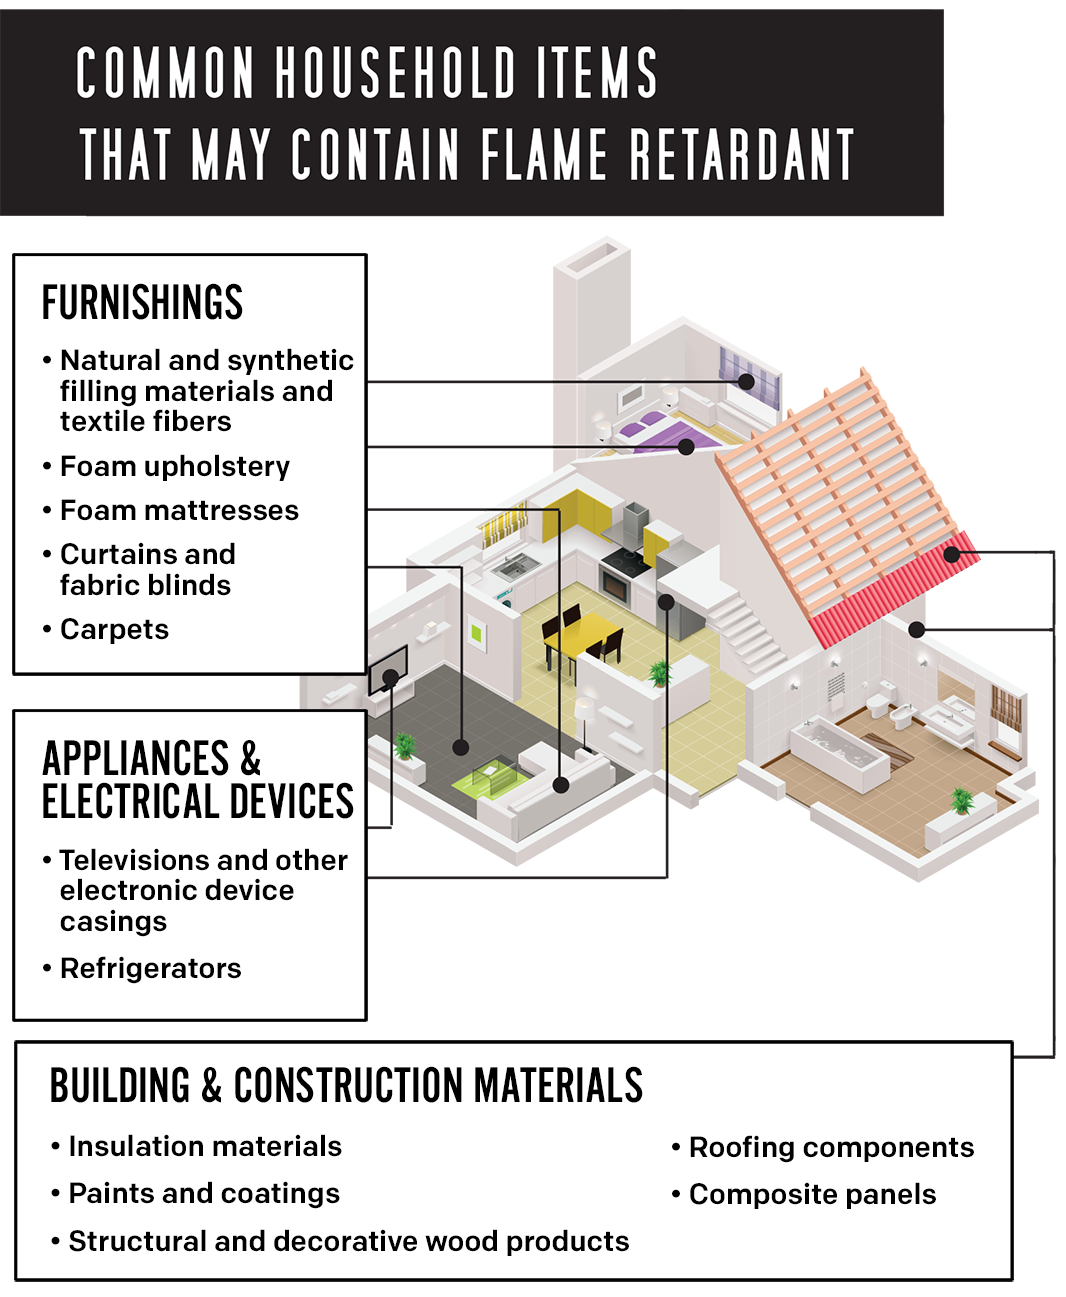 Common Household Items That May Contain Flame Retardant.